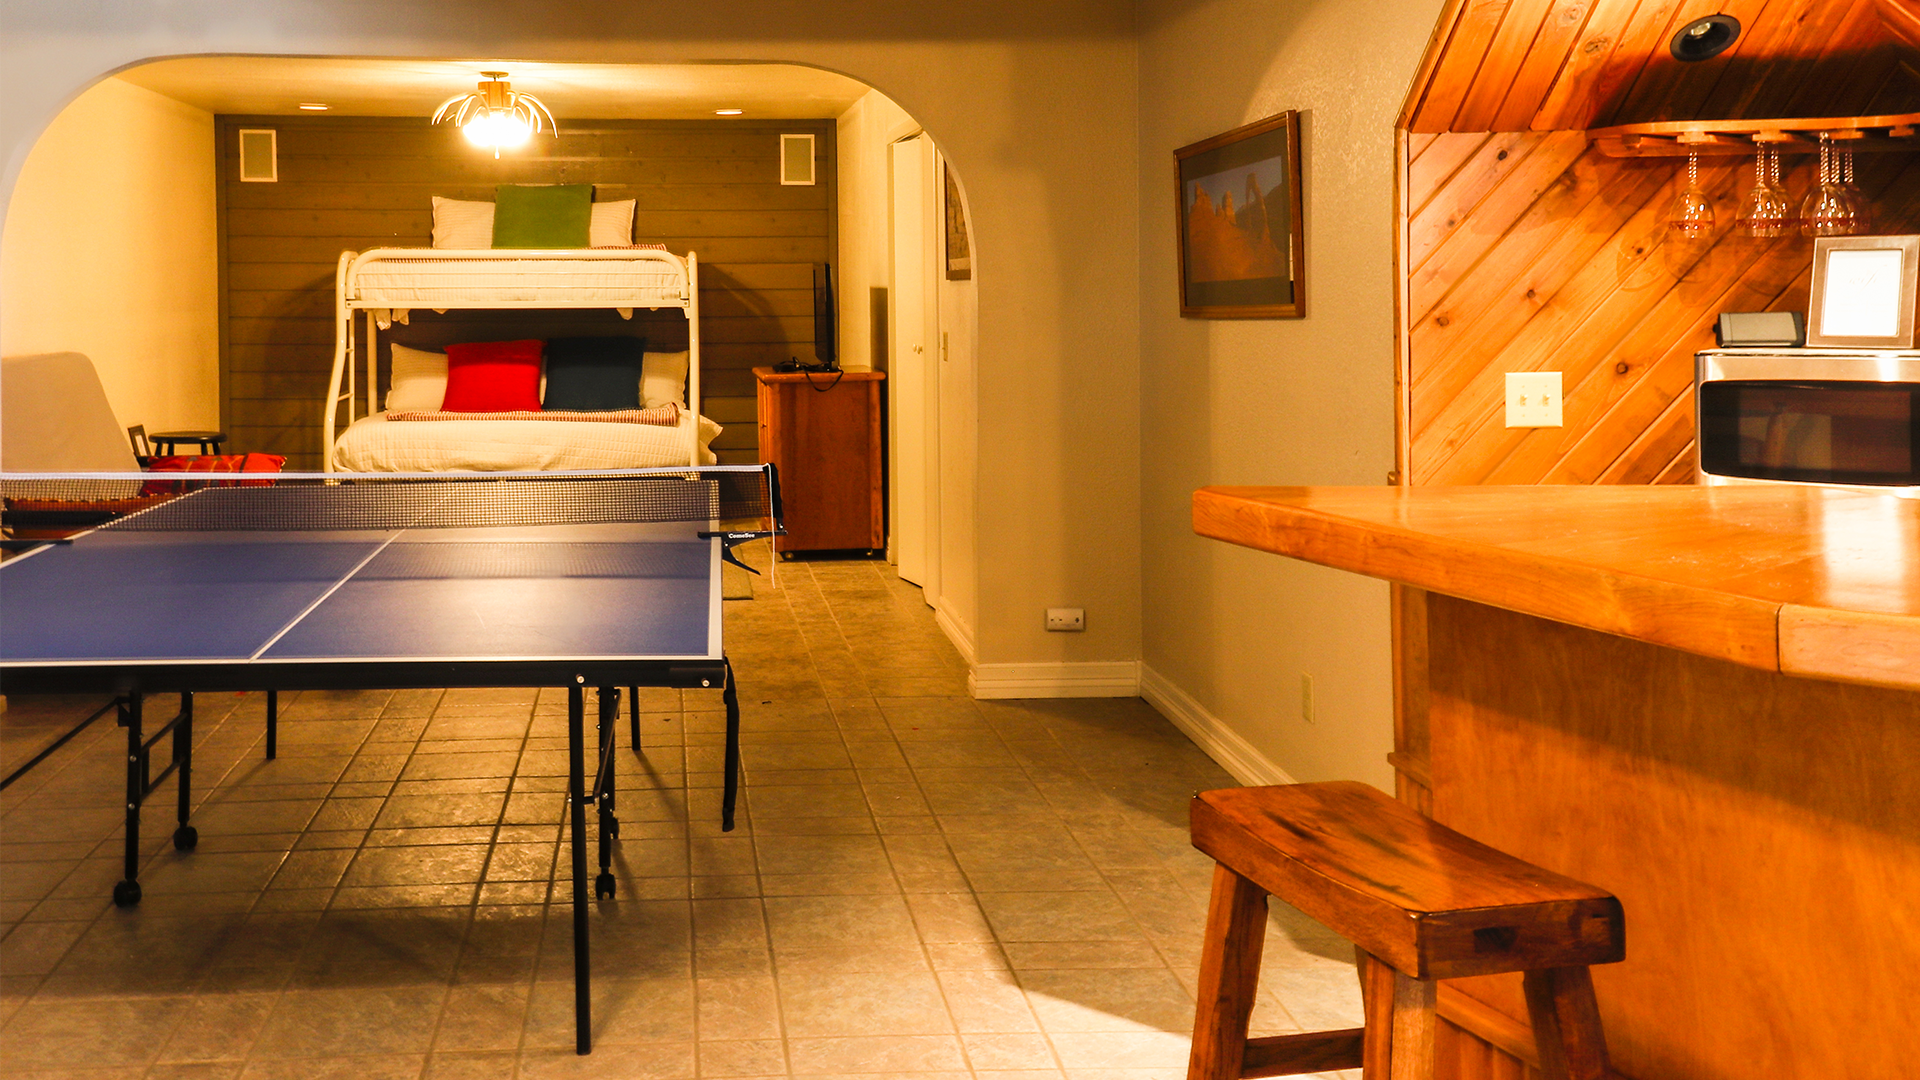 Ping Pong Table / Extra room with pyramid bunk beds